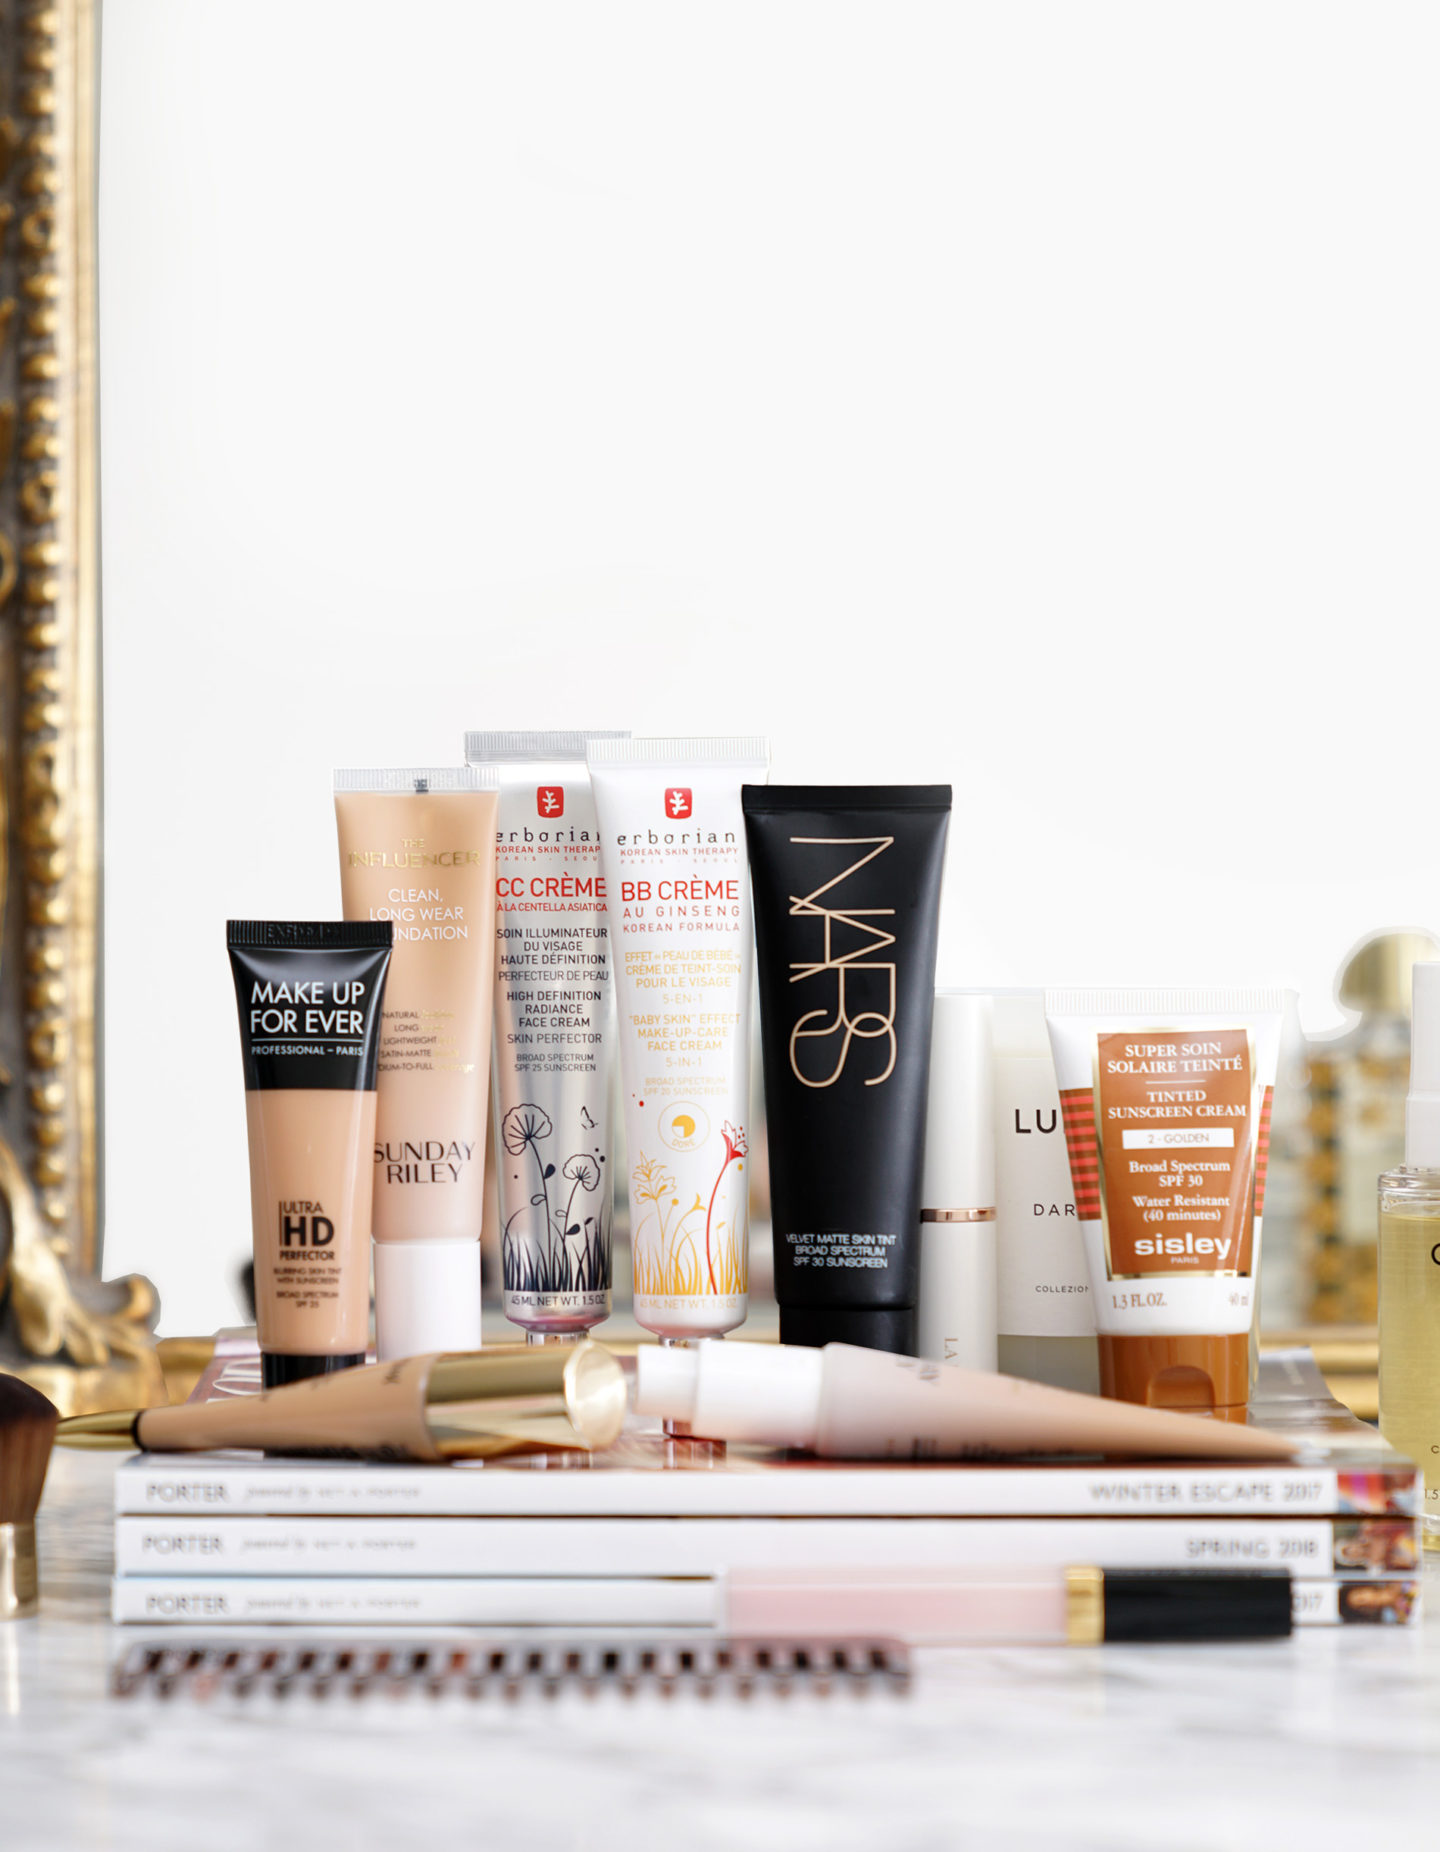 Natural Looking Foundations Make Up For Ever Ultra HD Perfector, Sunday Riley Influencer Foundation, Erborian BB Creme and CC Creme, NARS Velvet Matte Skin Tint, Sisley Tinted Sunscreen Cream | The Beauty Look Book